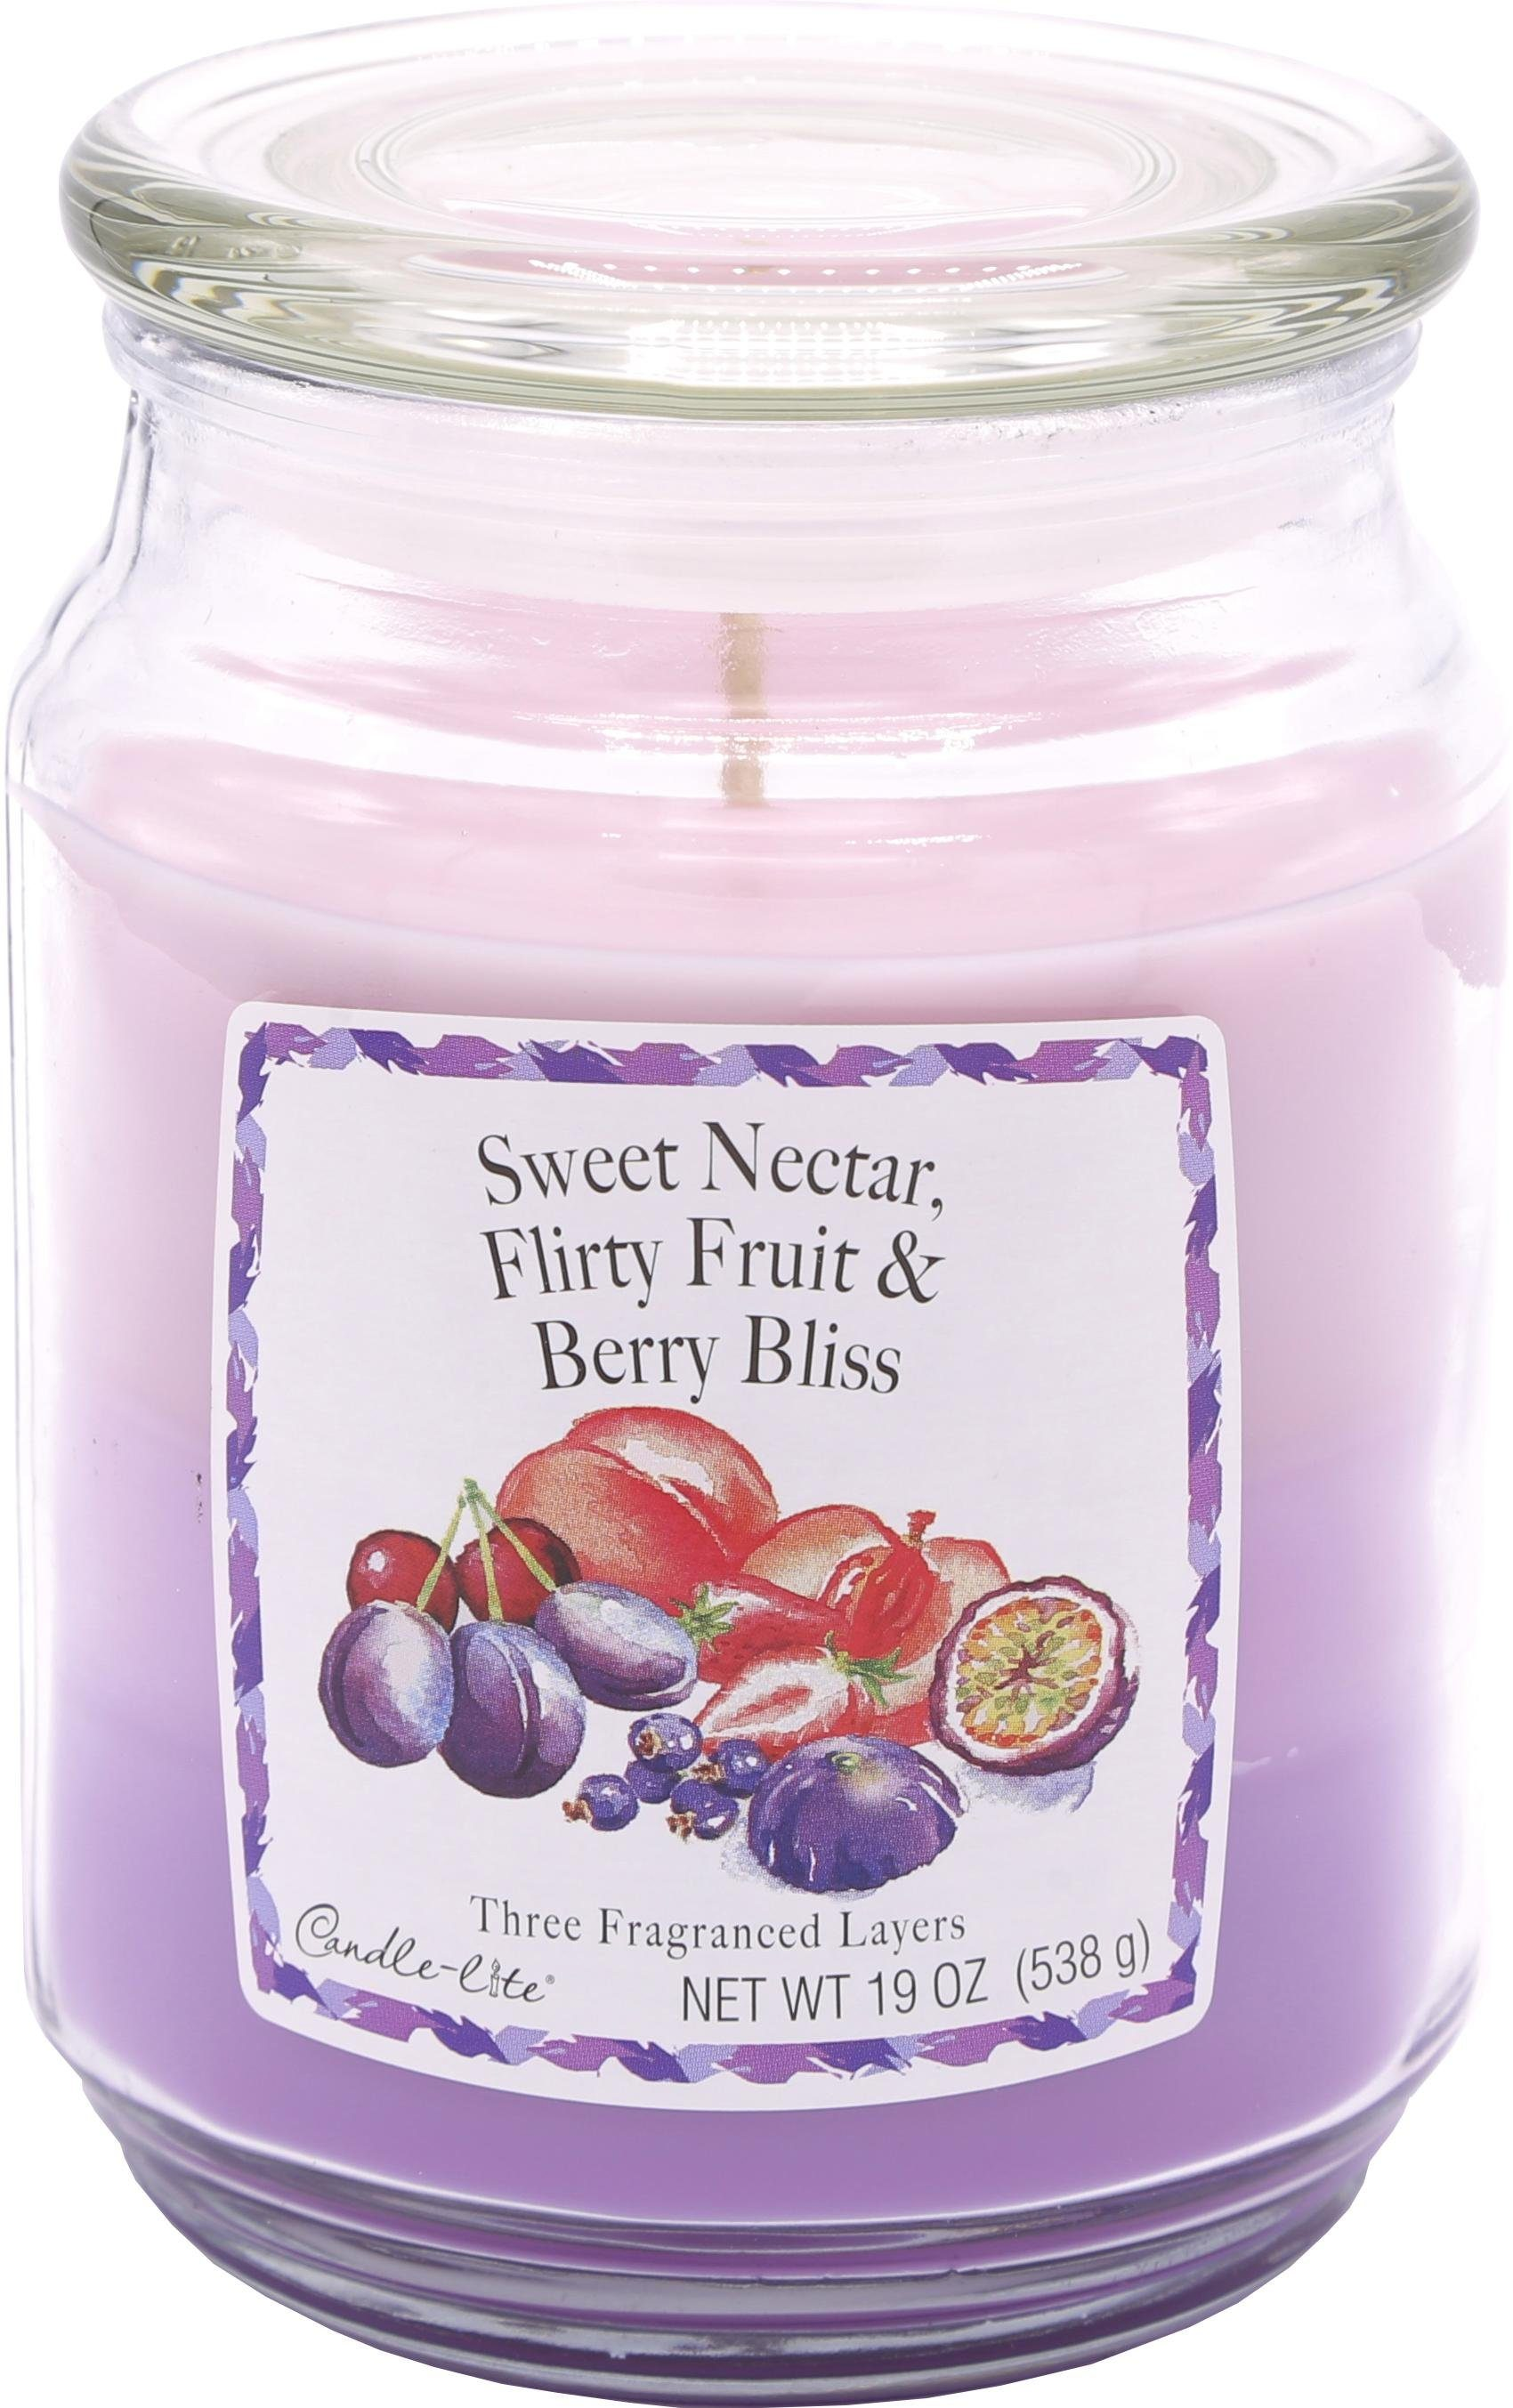 Candle-lite Duftkerze, 538g, »Three-Layer Jars - Sweet Nectar, Flirty Fruits, Berry Bliss«